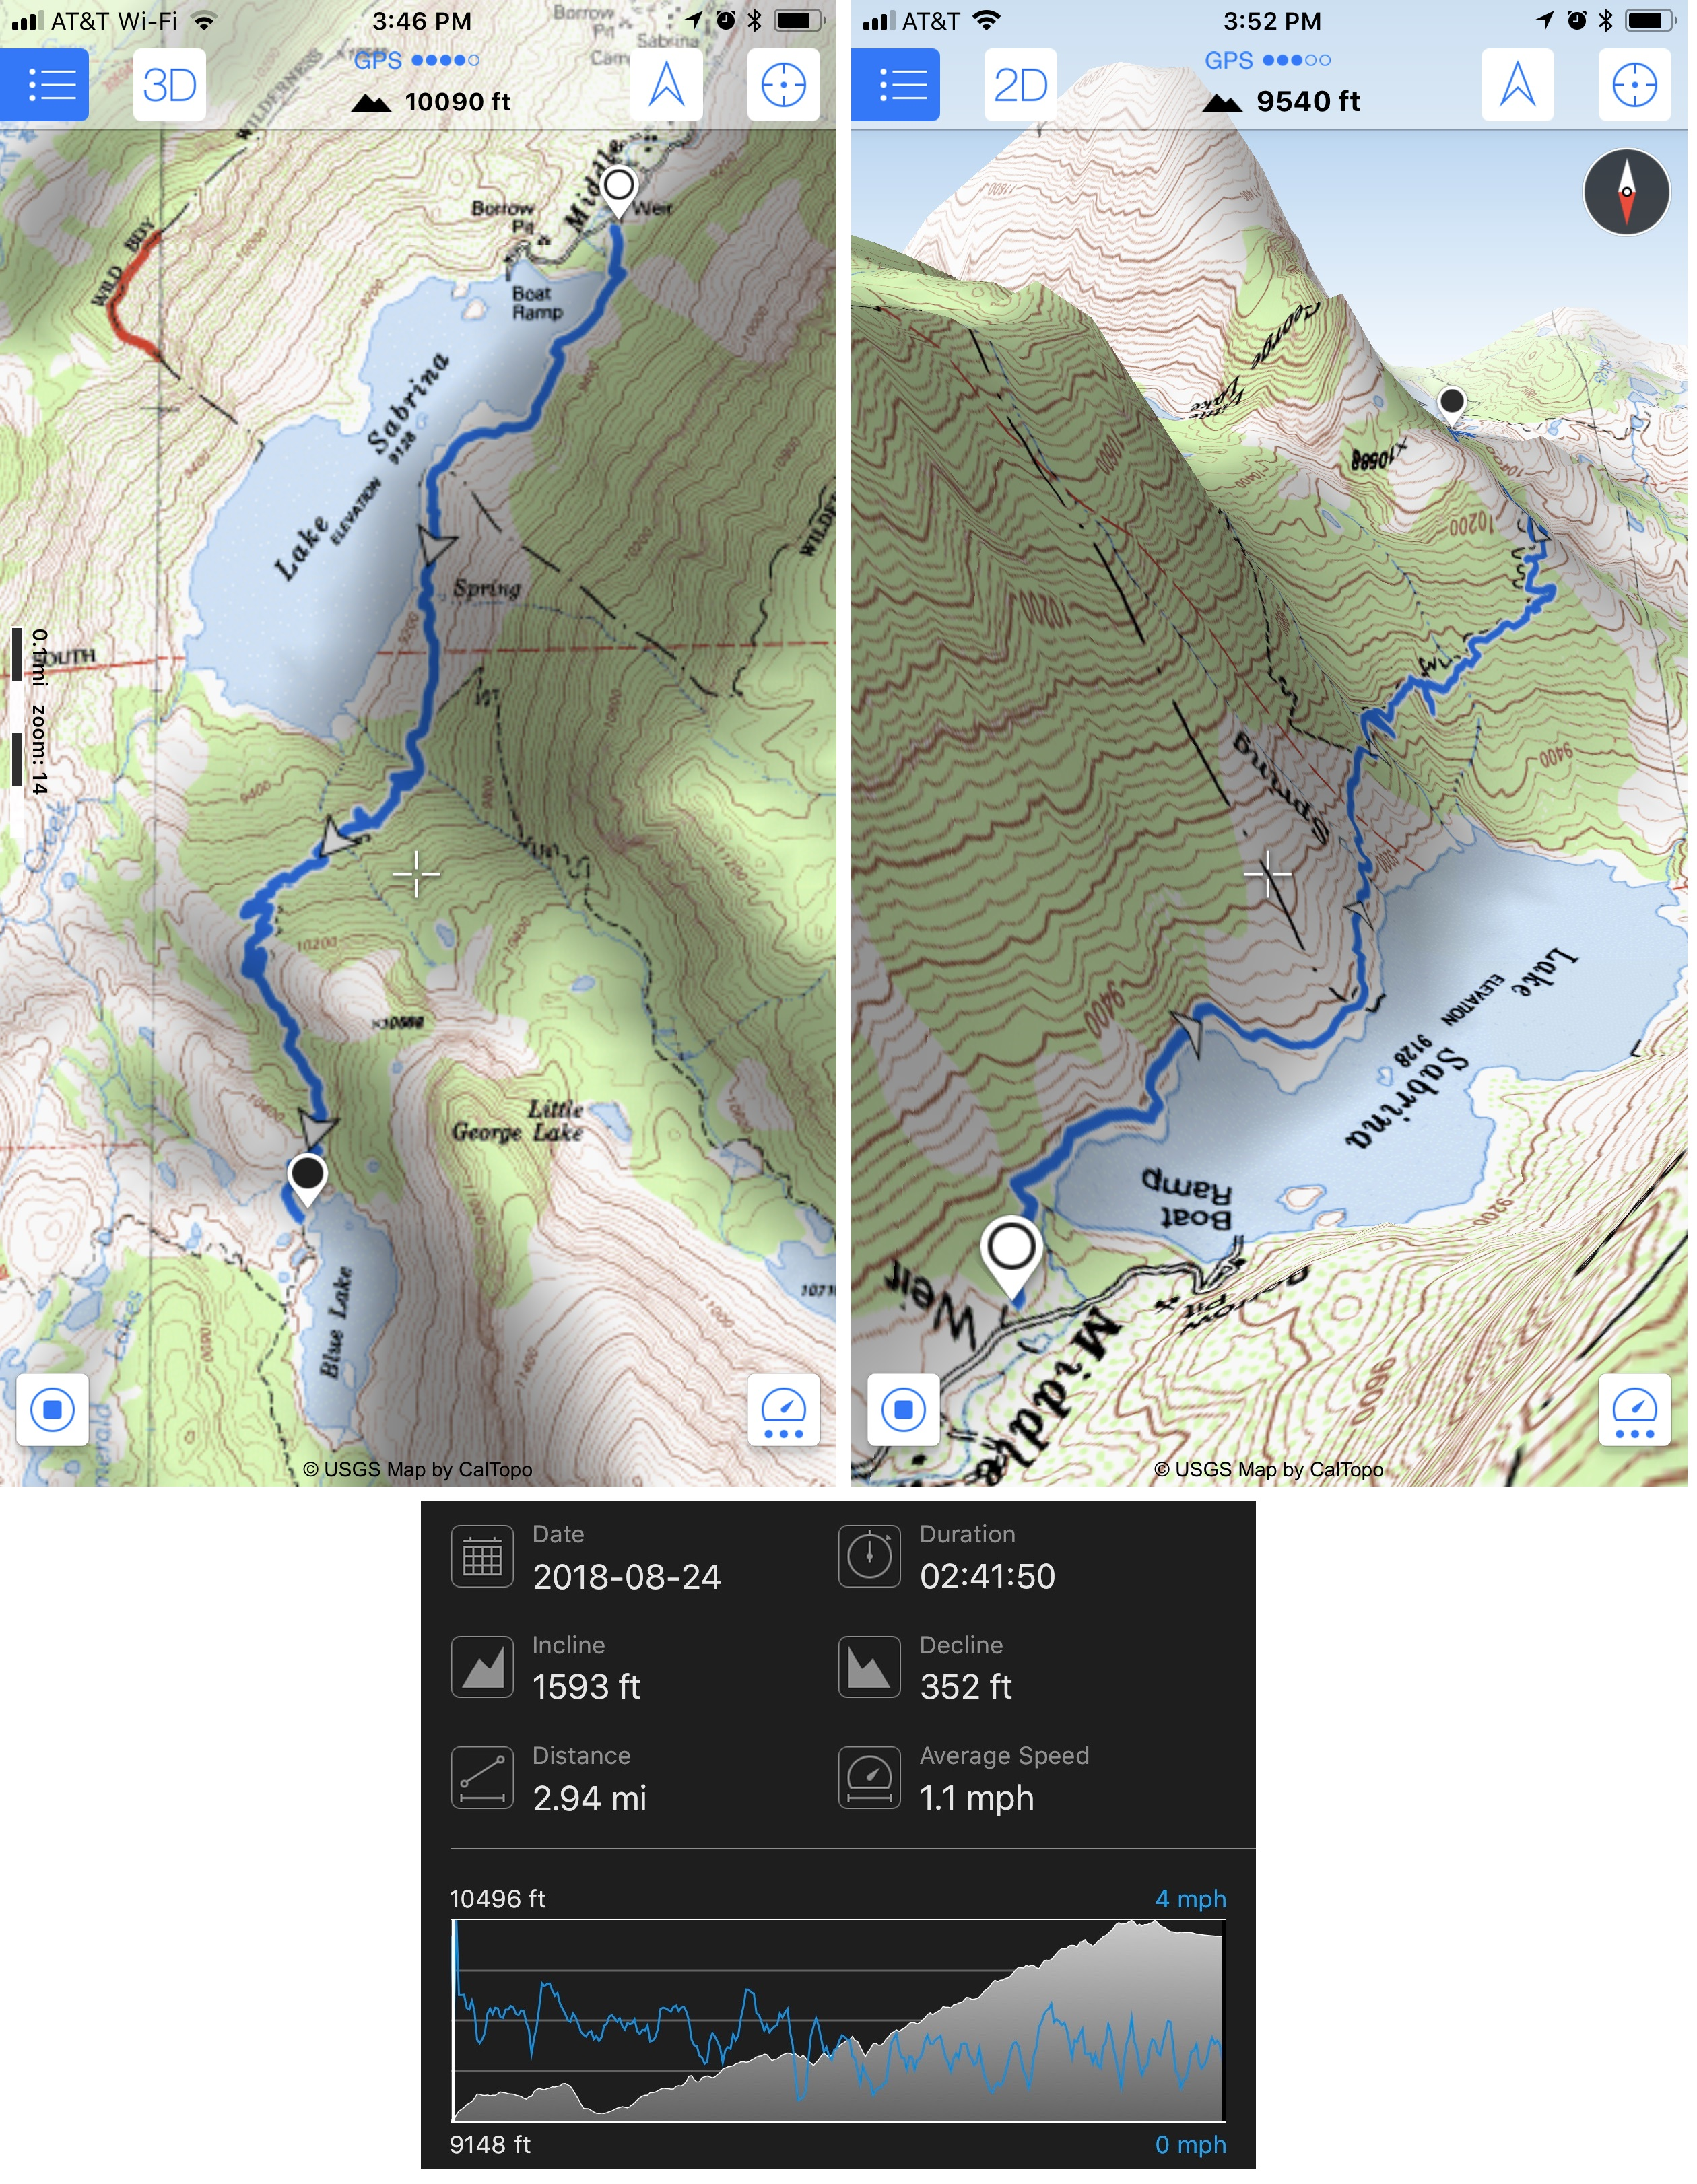 GPS data from trailhead to Blue Lake